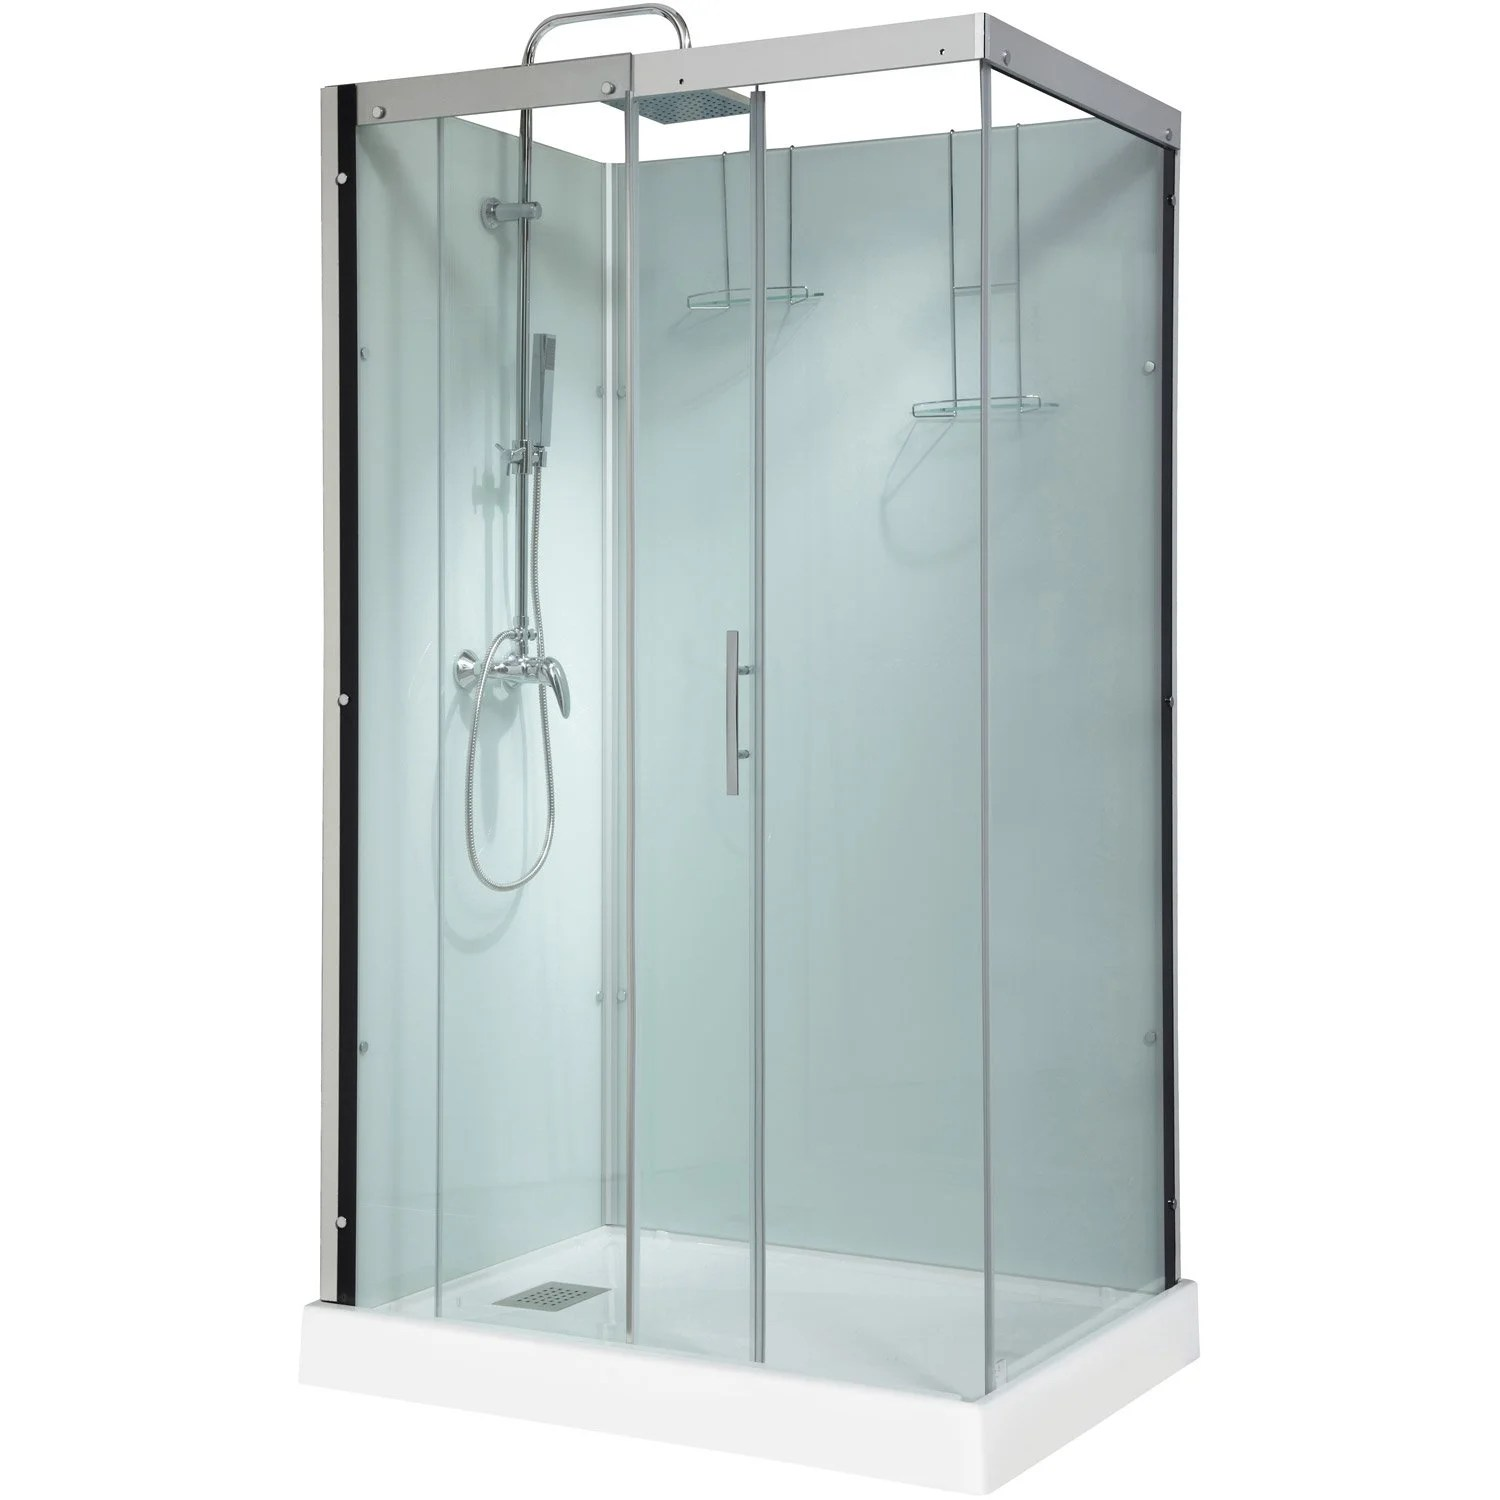 Salon De Jardin Allibert Castorama Cabine De Douche Rectangulaire 120x90 Cm, Thalaglass 2